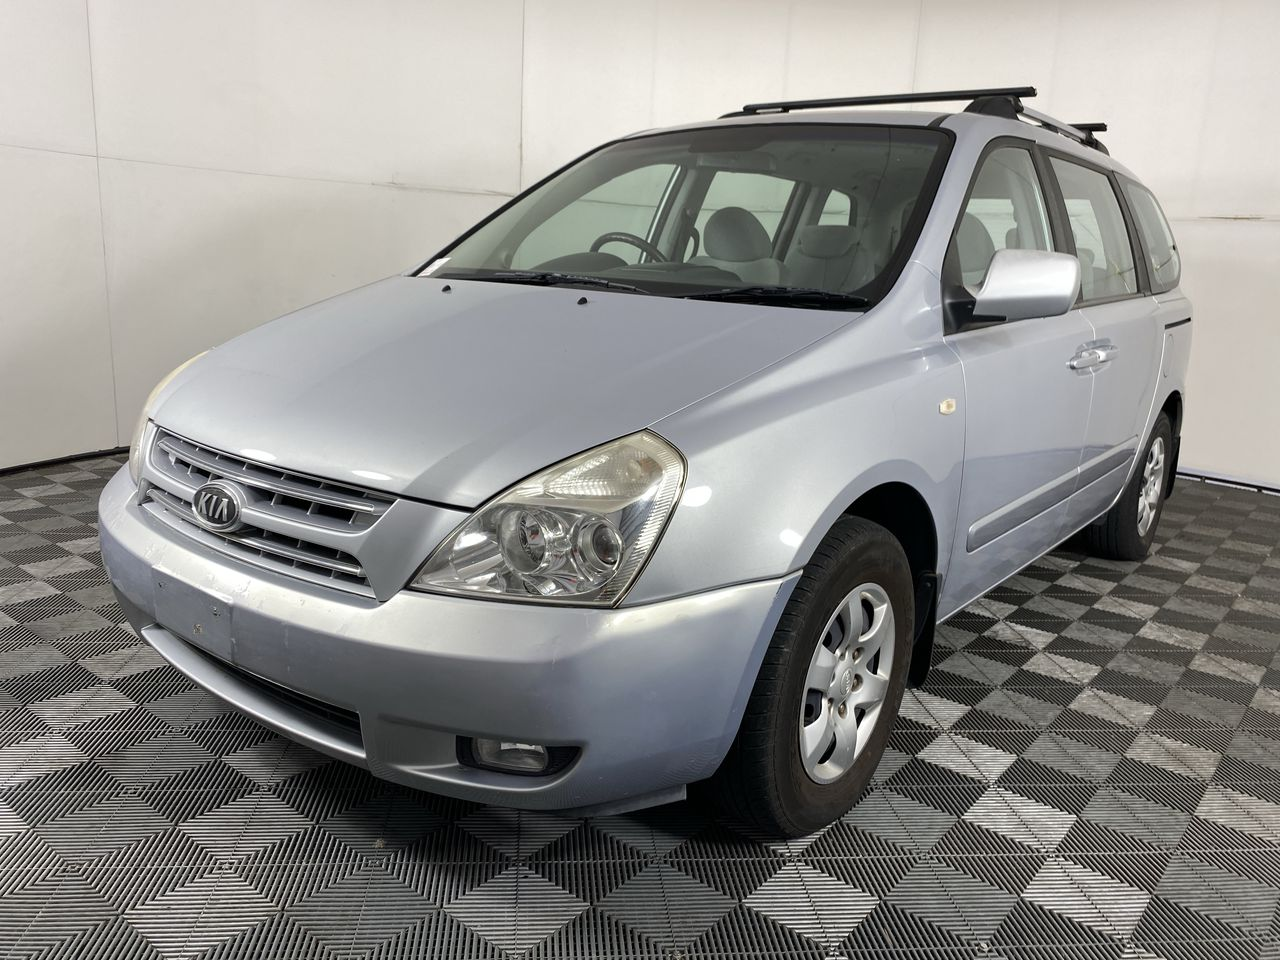 2008 Kia Carnival EX VQ 8 Seat People Mover